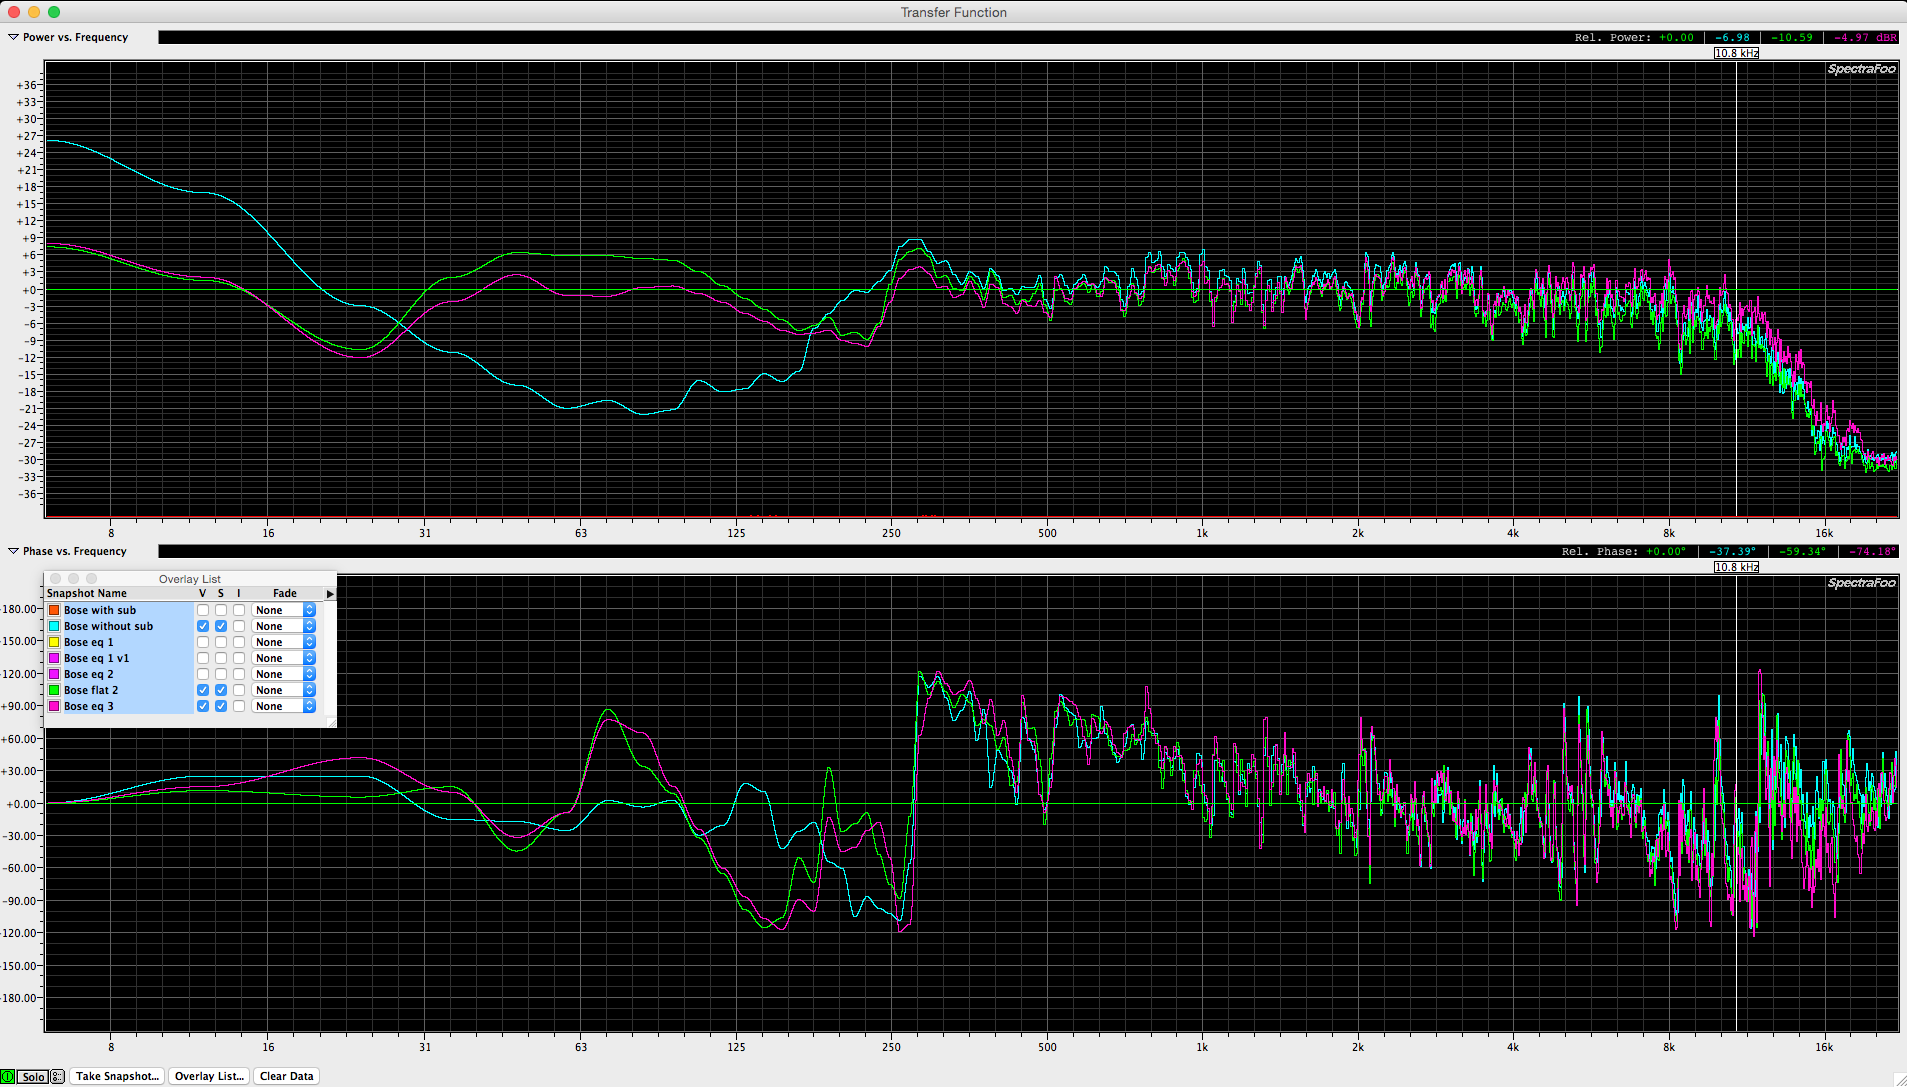 Bose L1 & B1 with and without EQ